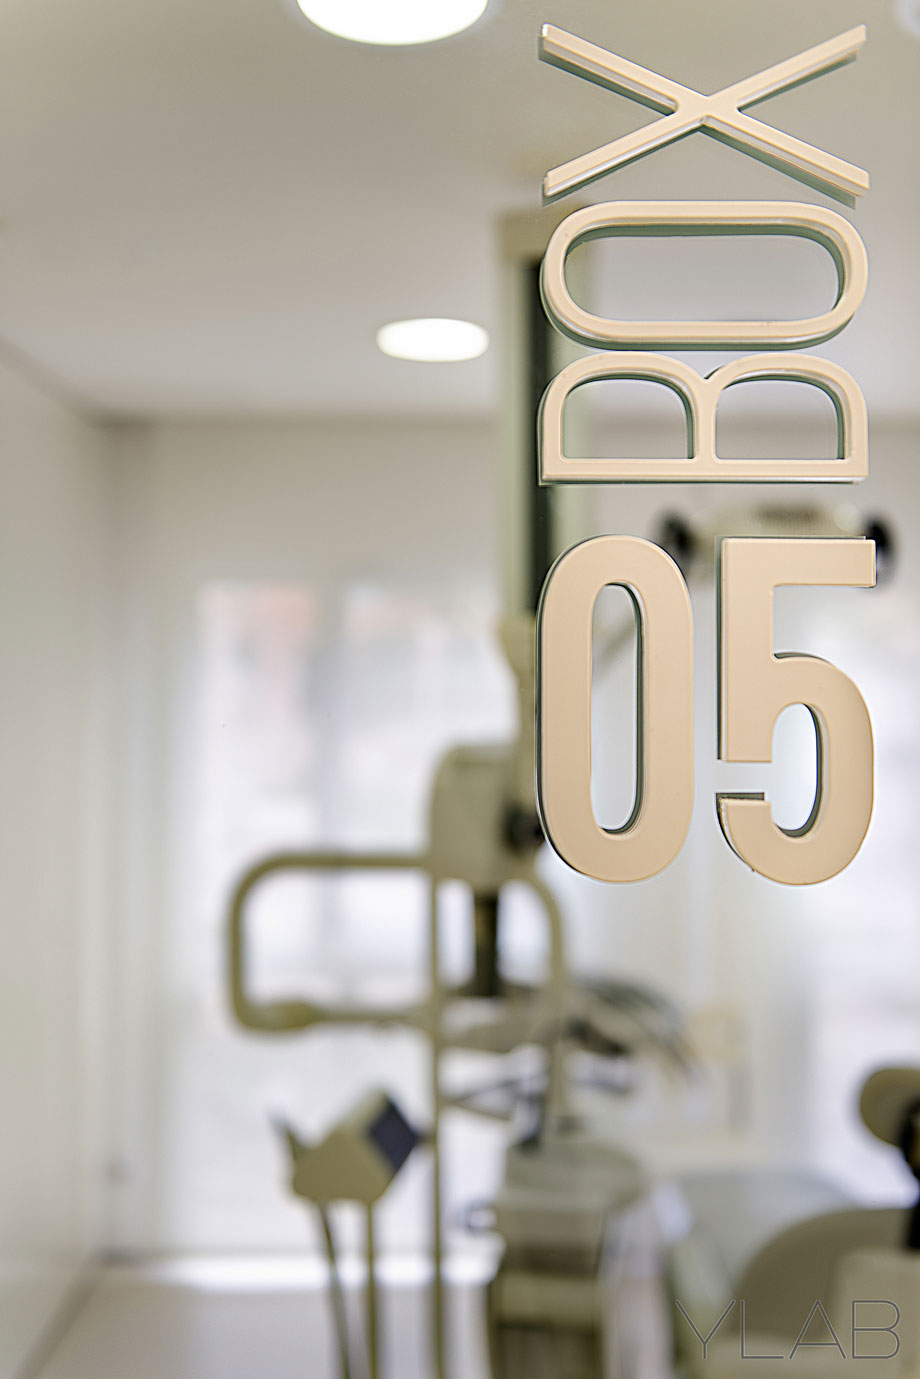 clinica-dental-valles-ylab-arquitectos (13)